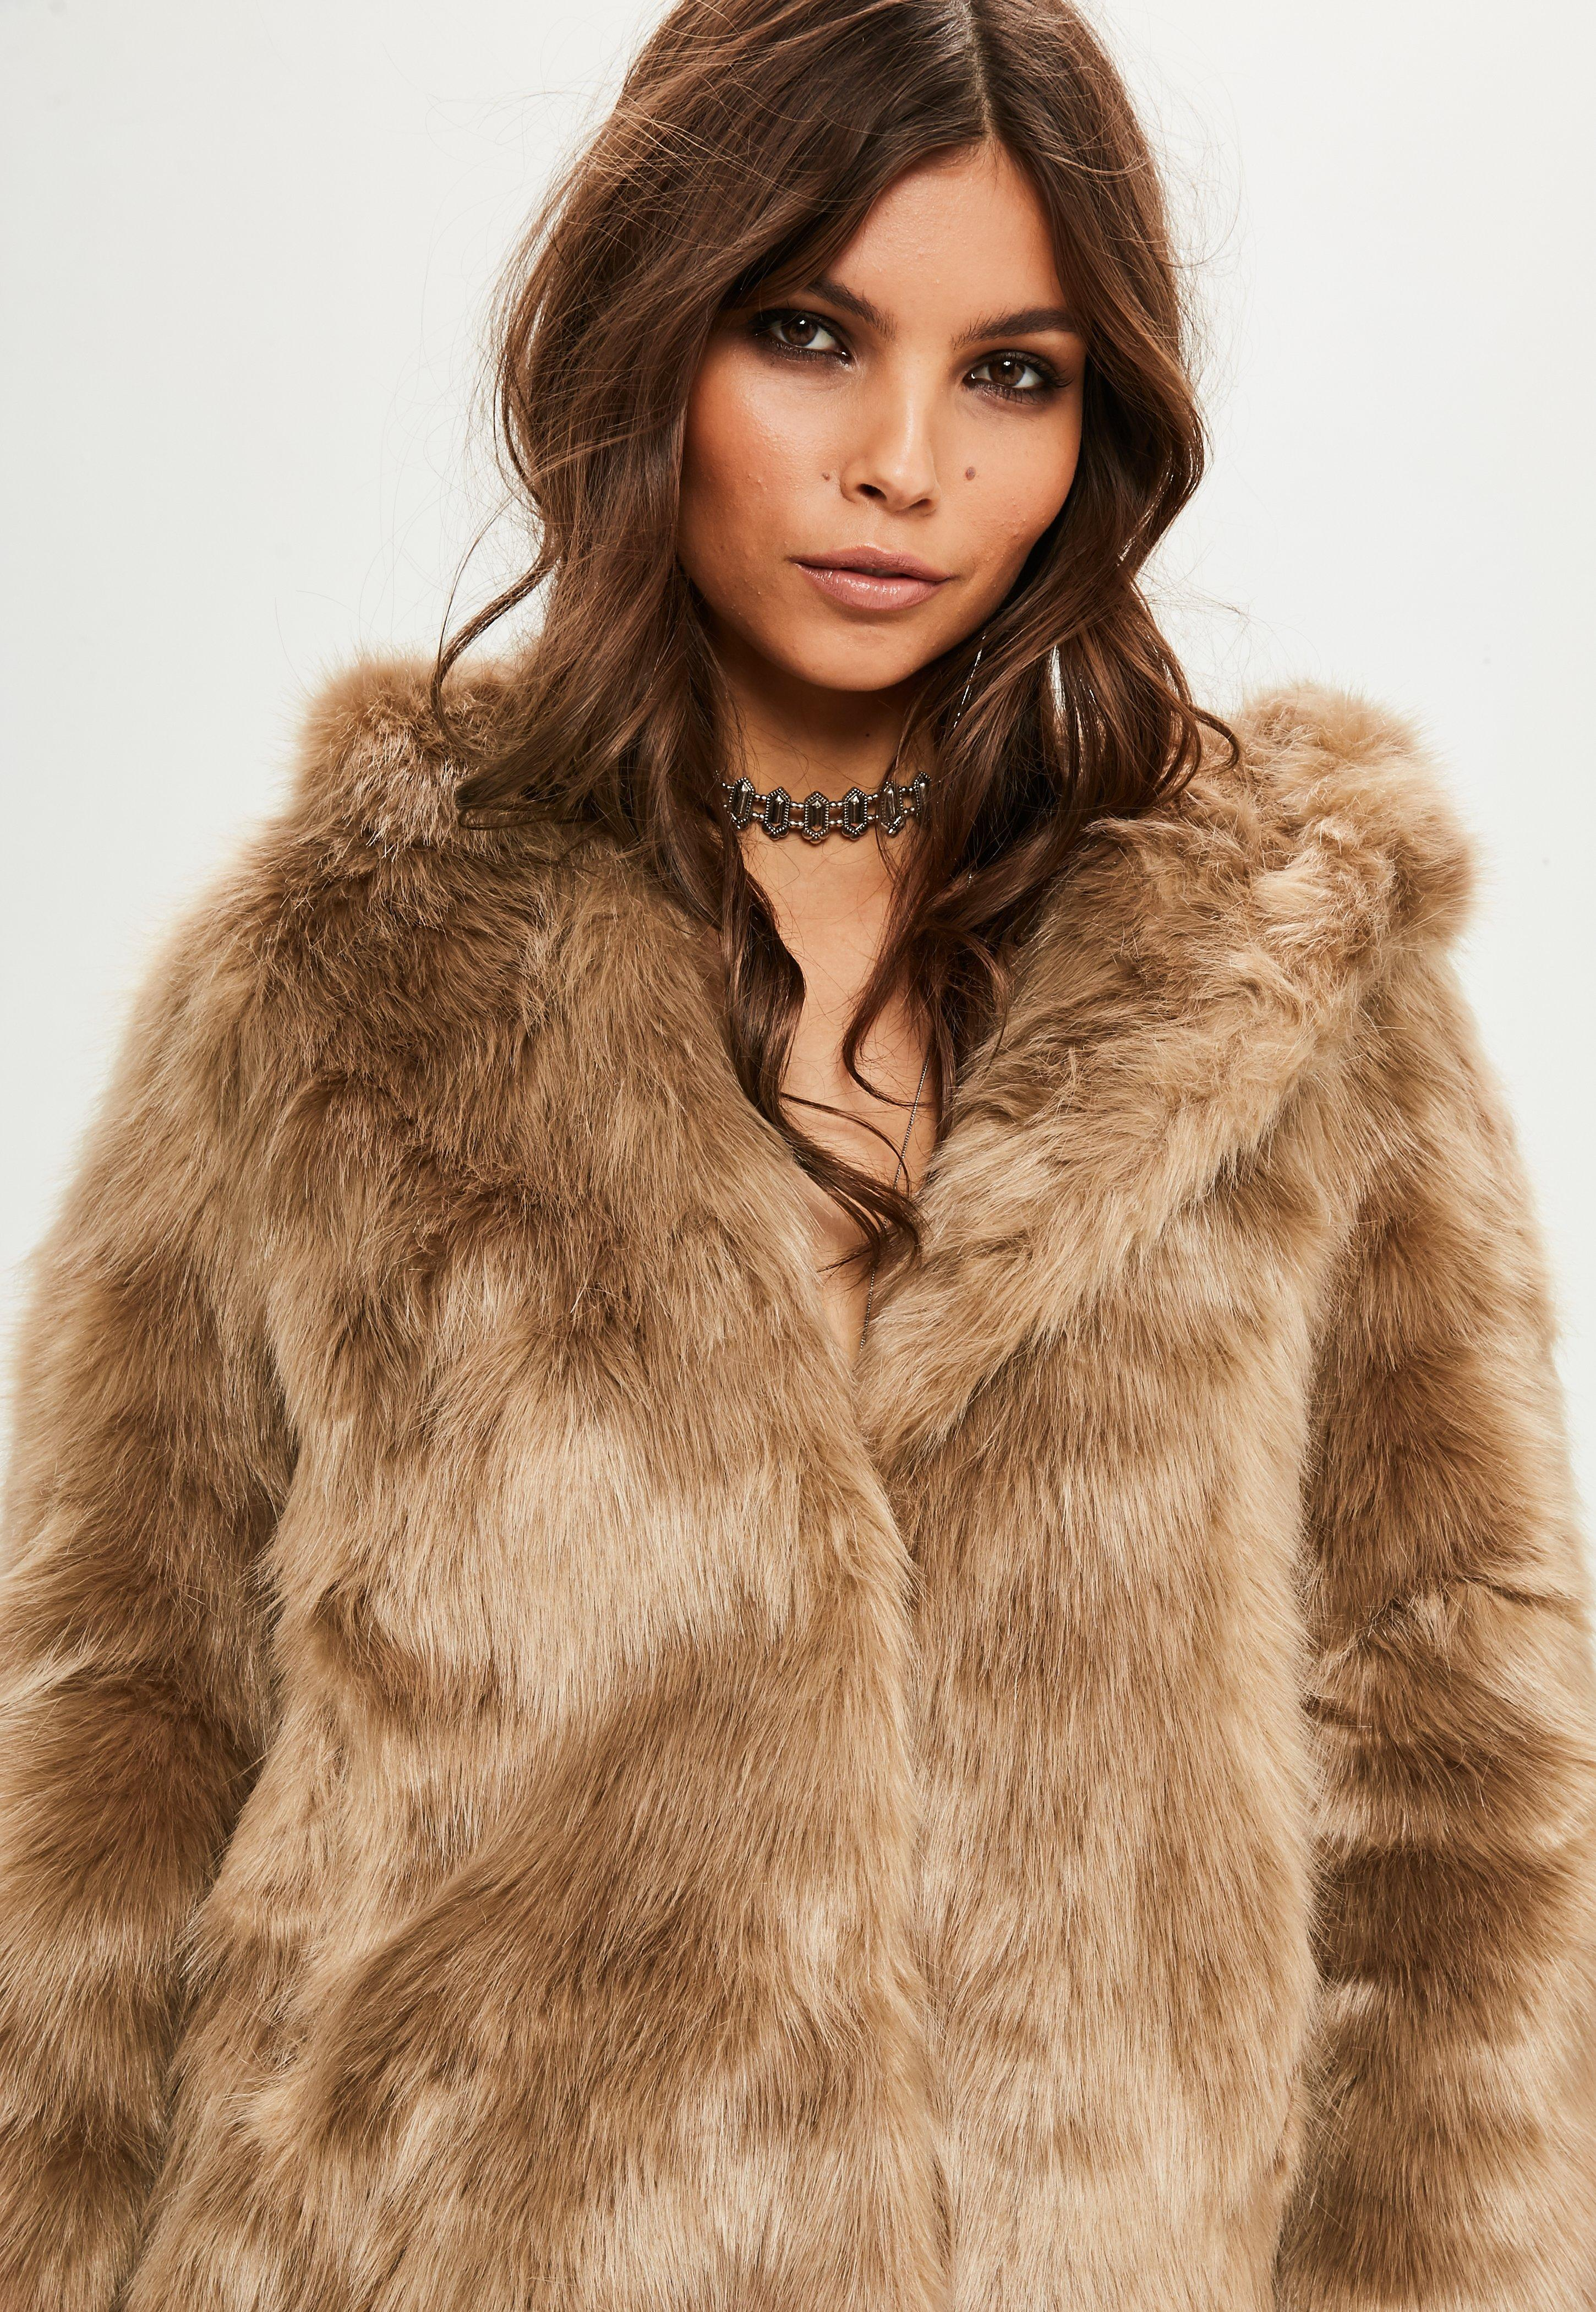 Lyst - Missguided Cassie Shaggy Faux Fur Coat Nude in Natural